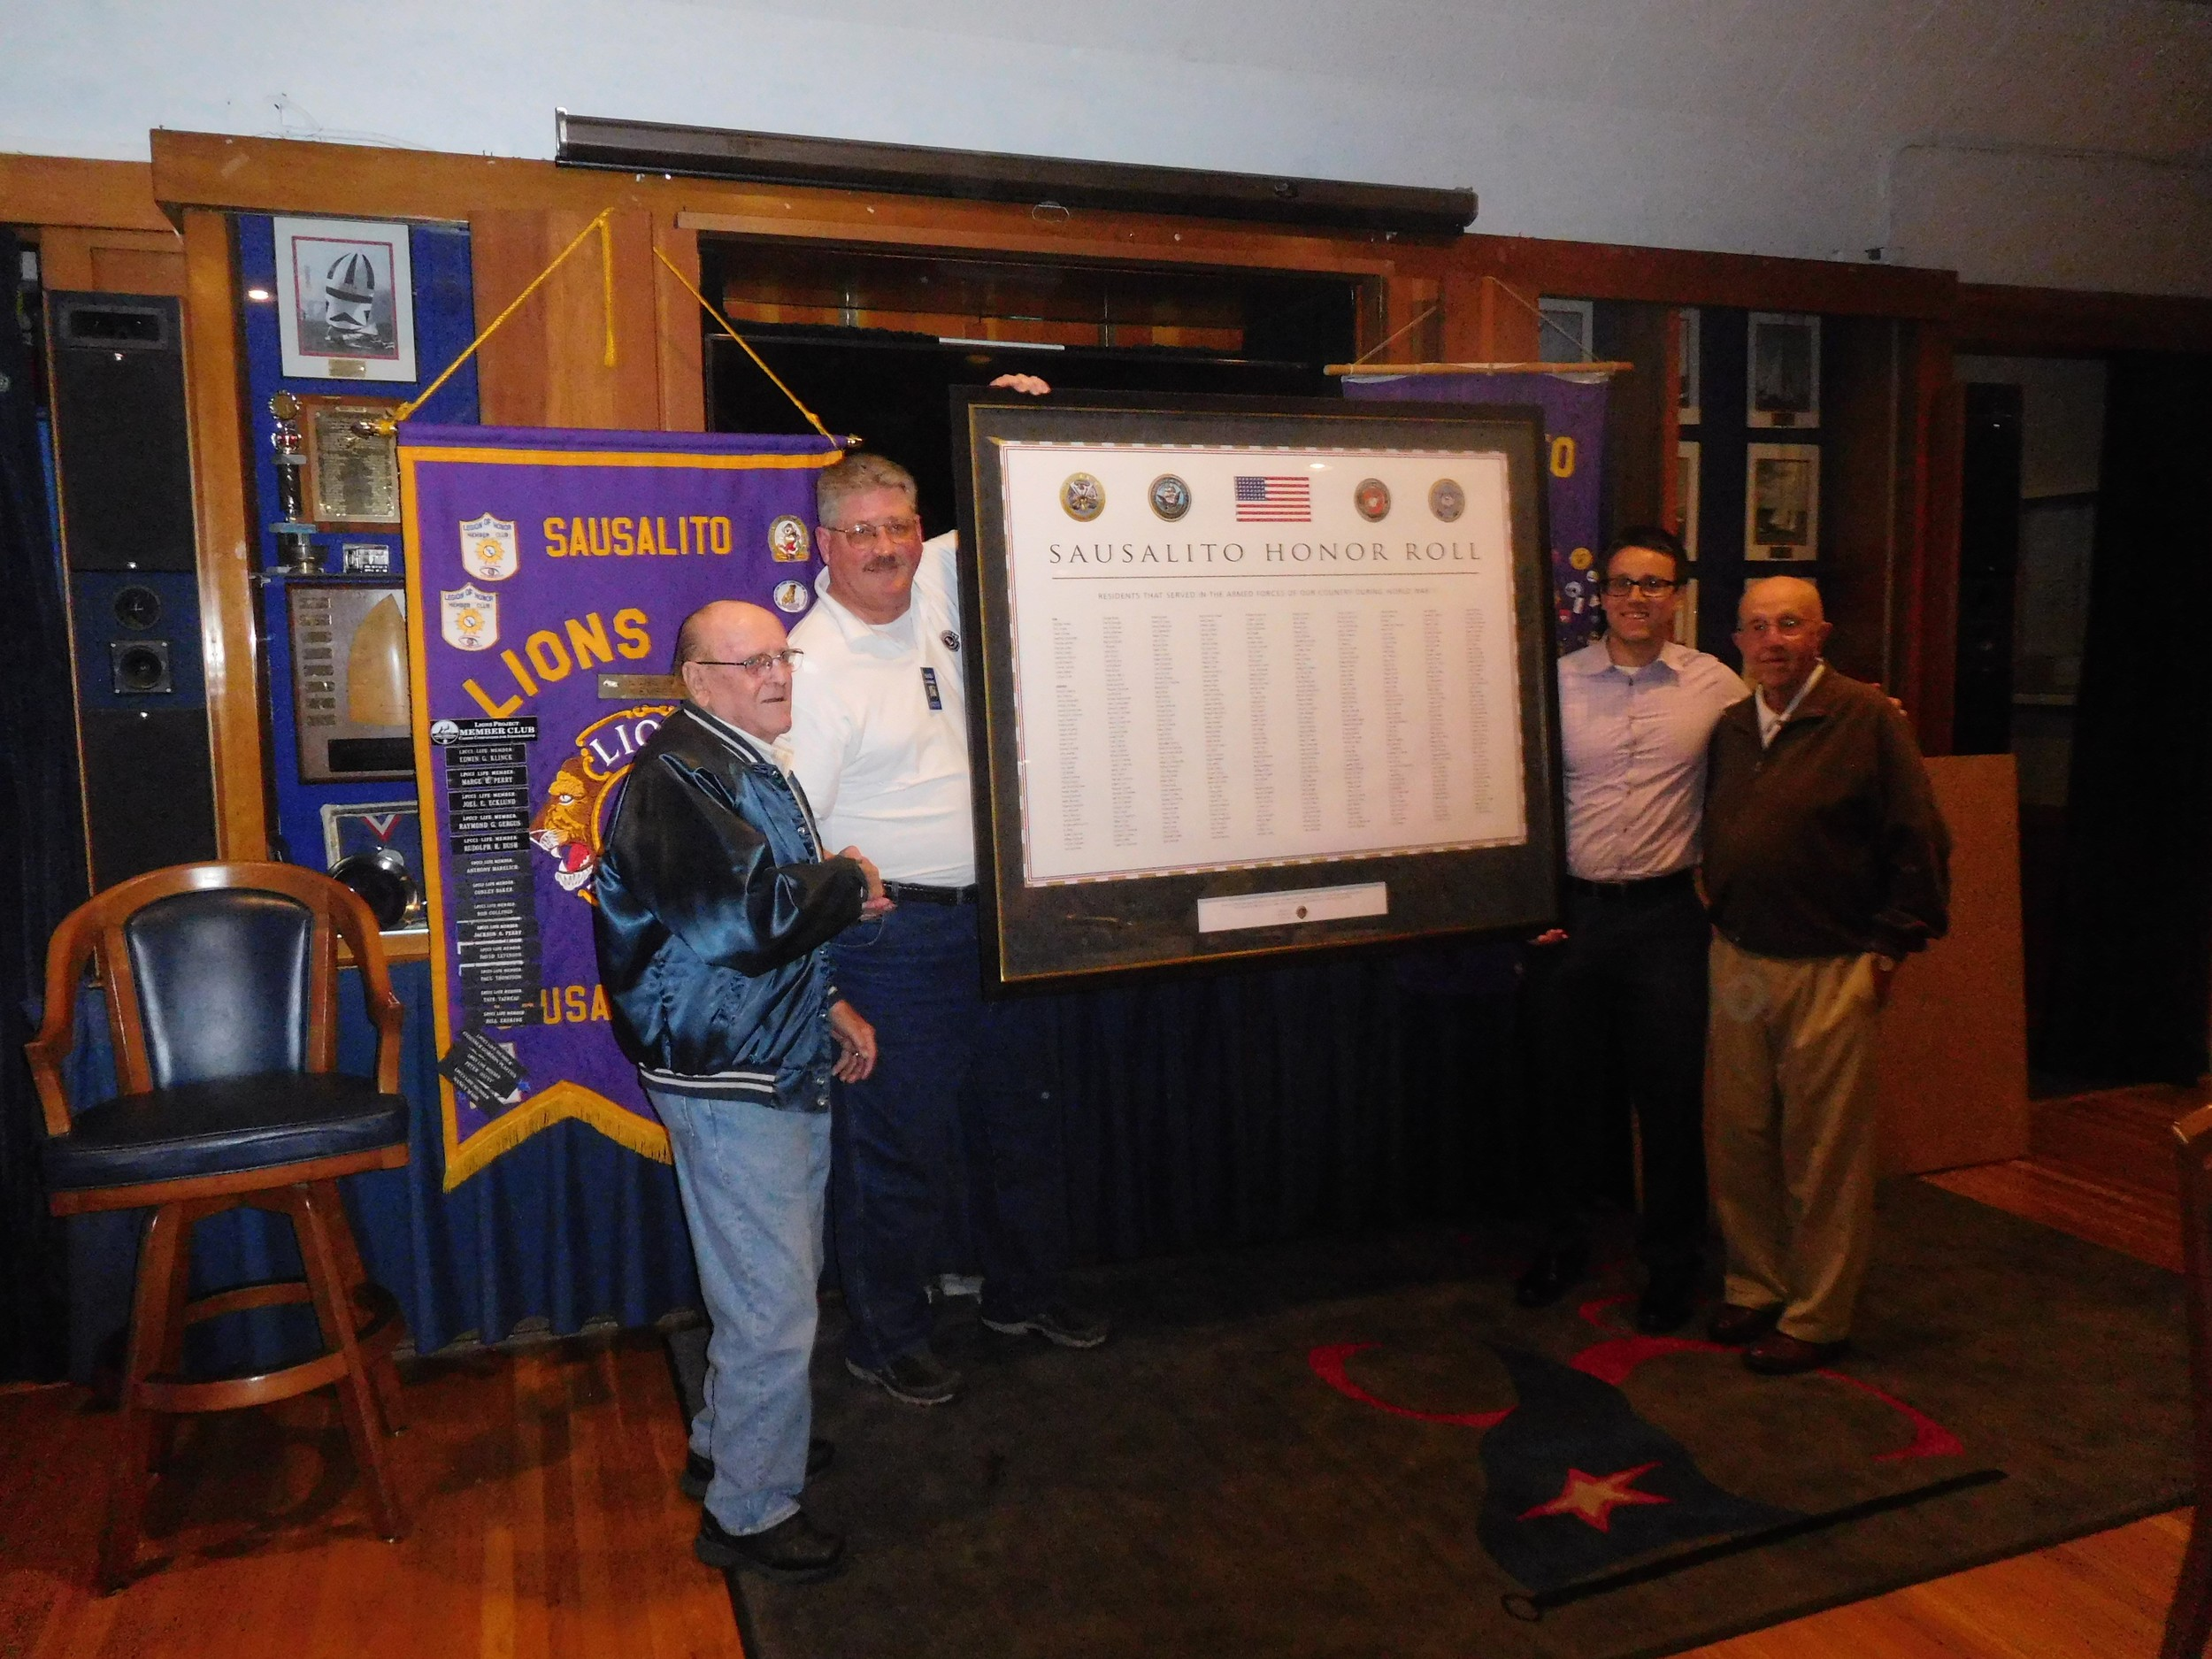 Left to right: Ed Madsen with Sausalito Lions Richard Carnal, Richard Davey, C.D. Madsen. Photo by Jerry Taylor